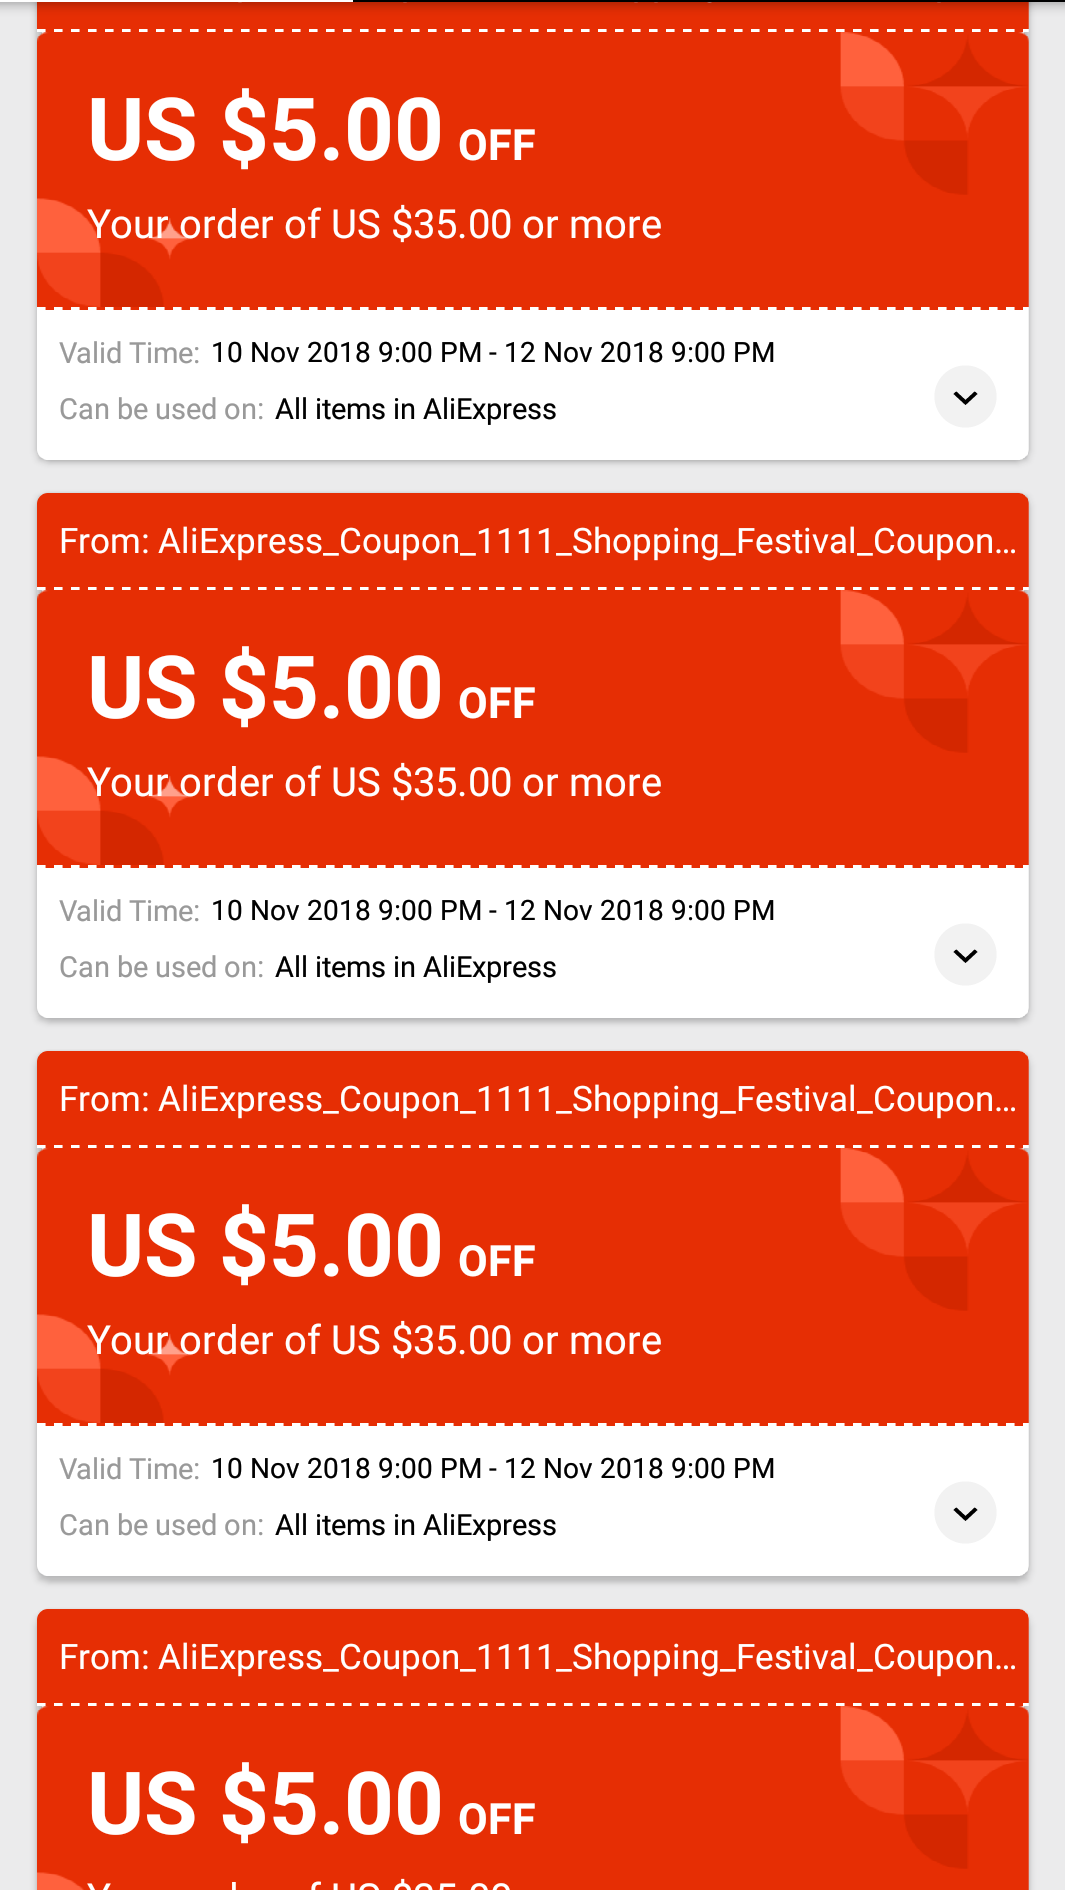 Aliexpress Coupon Codes In 2020 Coding Coupons Promo Codes